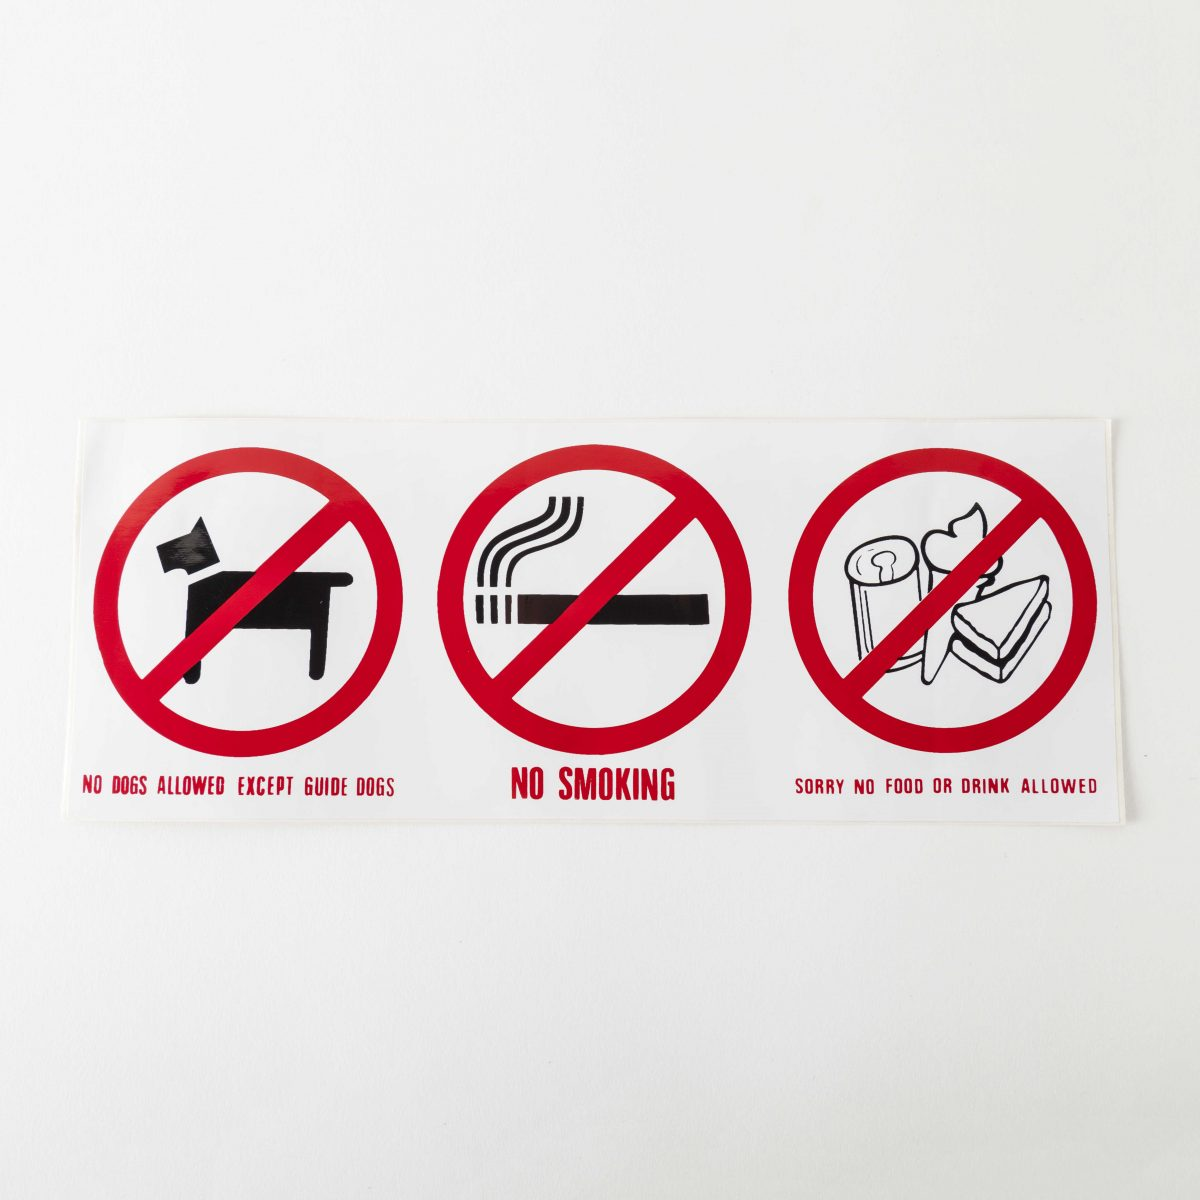 Front Adhesive Warning & Safety Signs